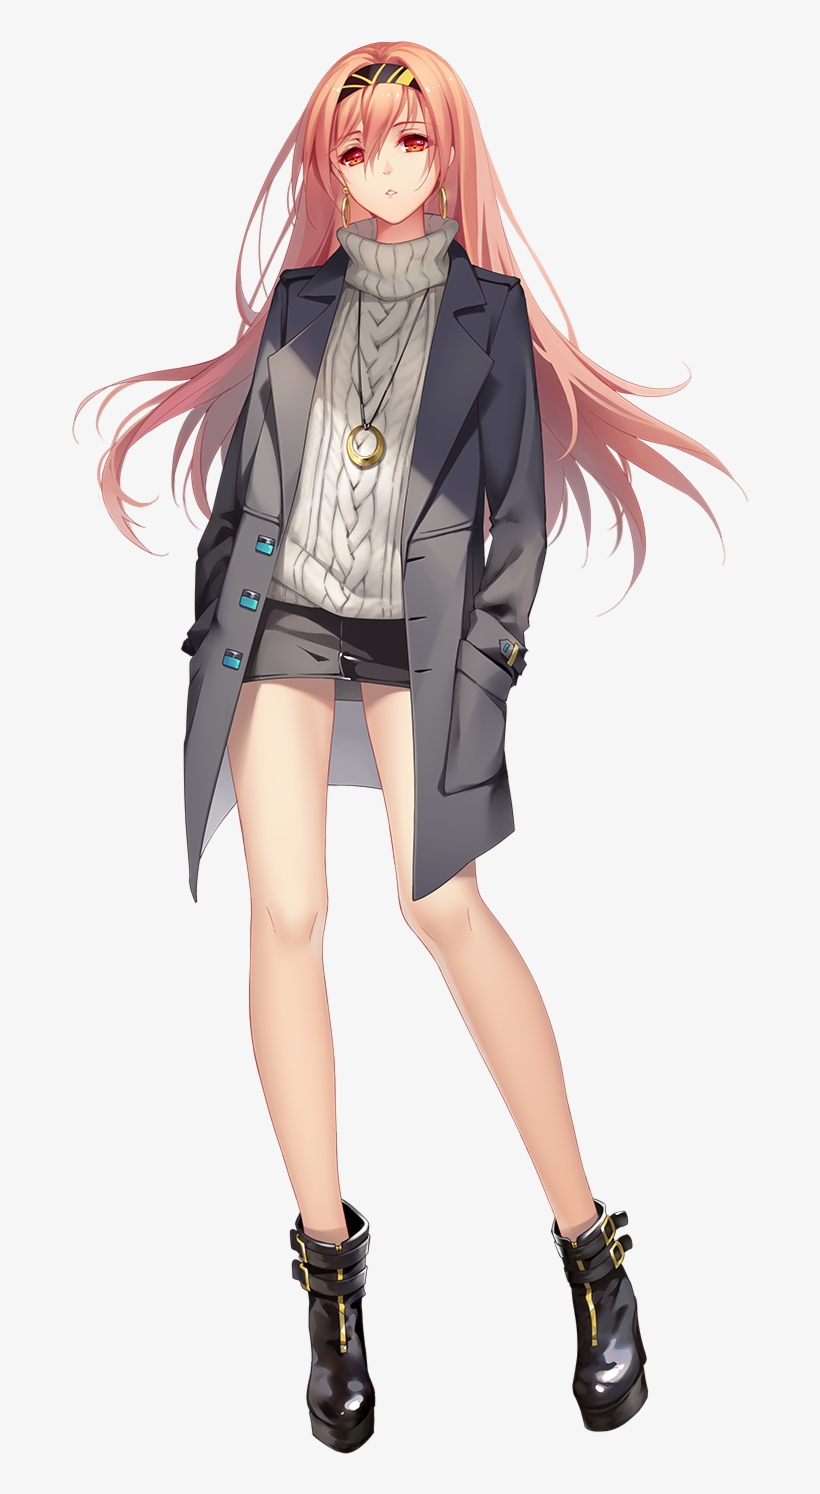 Anime Girl Full Body Transparent PNG - 9x9 - Free Download on